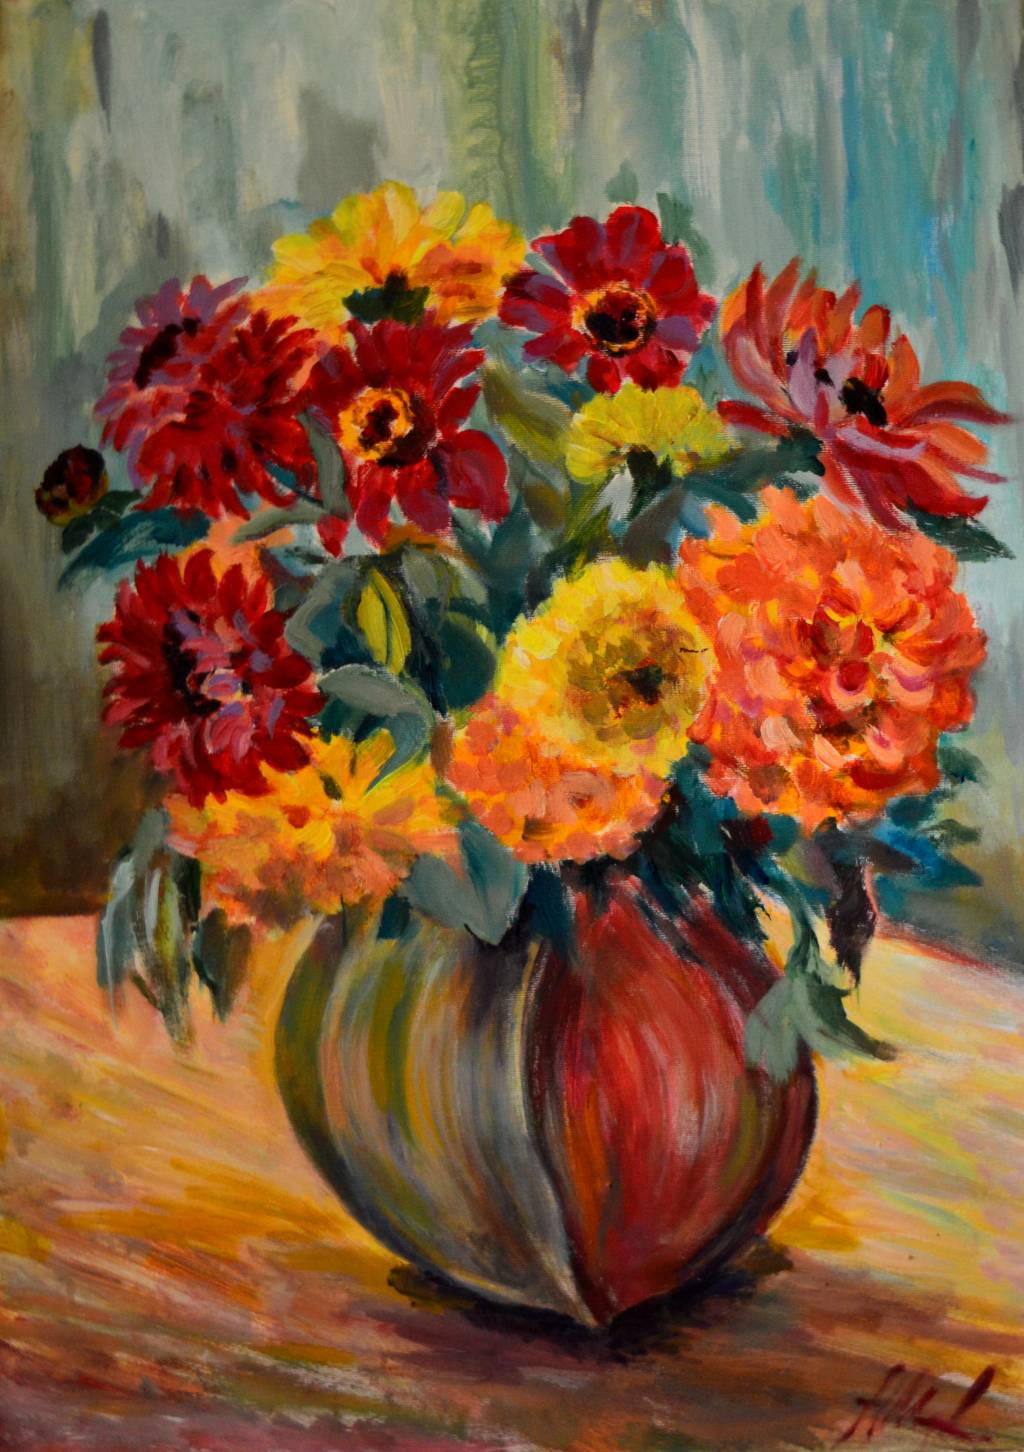 Poza Autumn bouquet